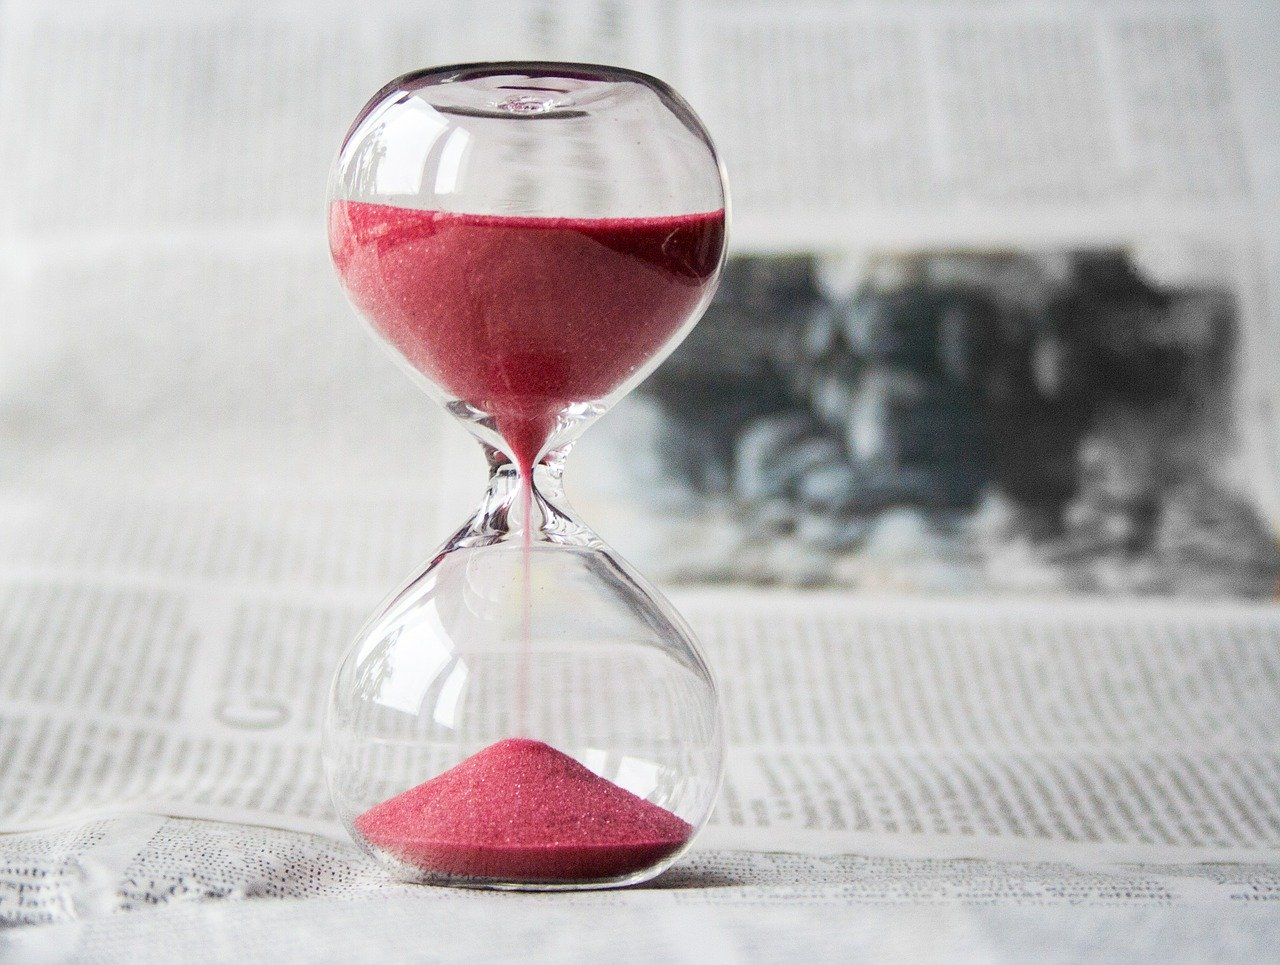 An hourglass on top of a newspaper